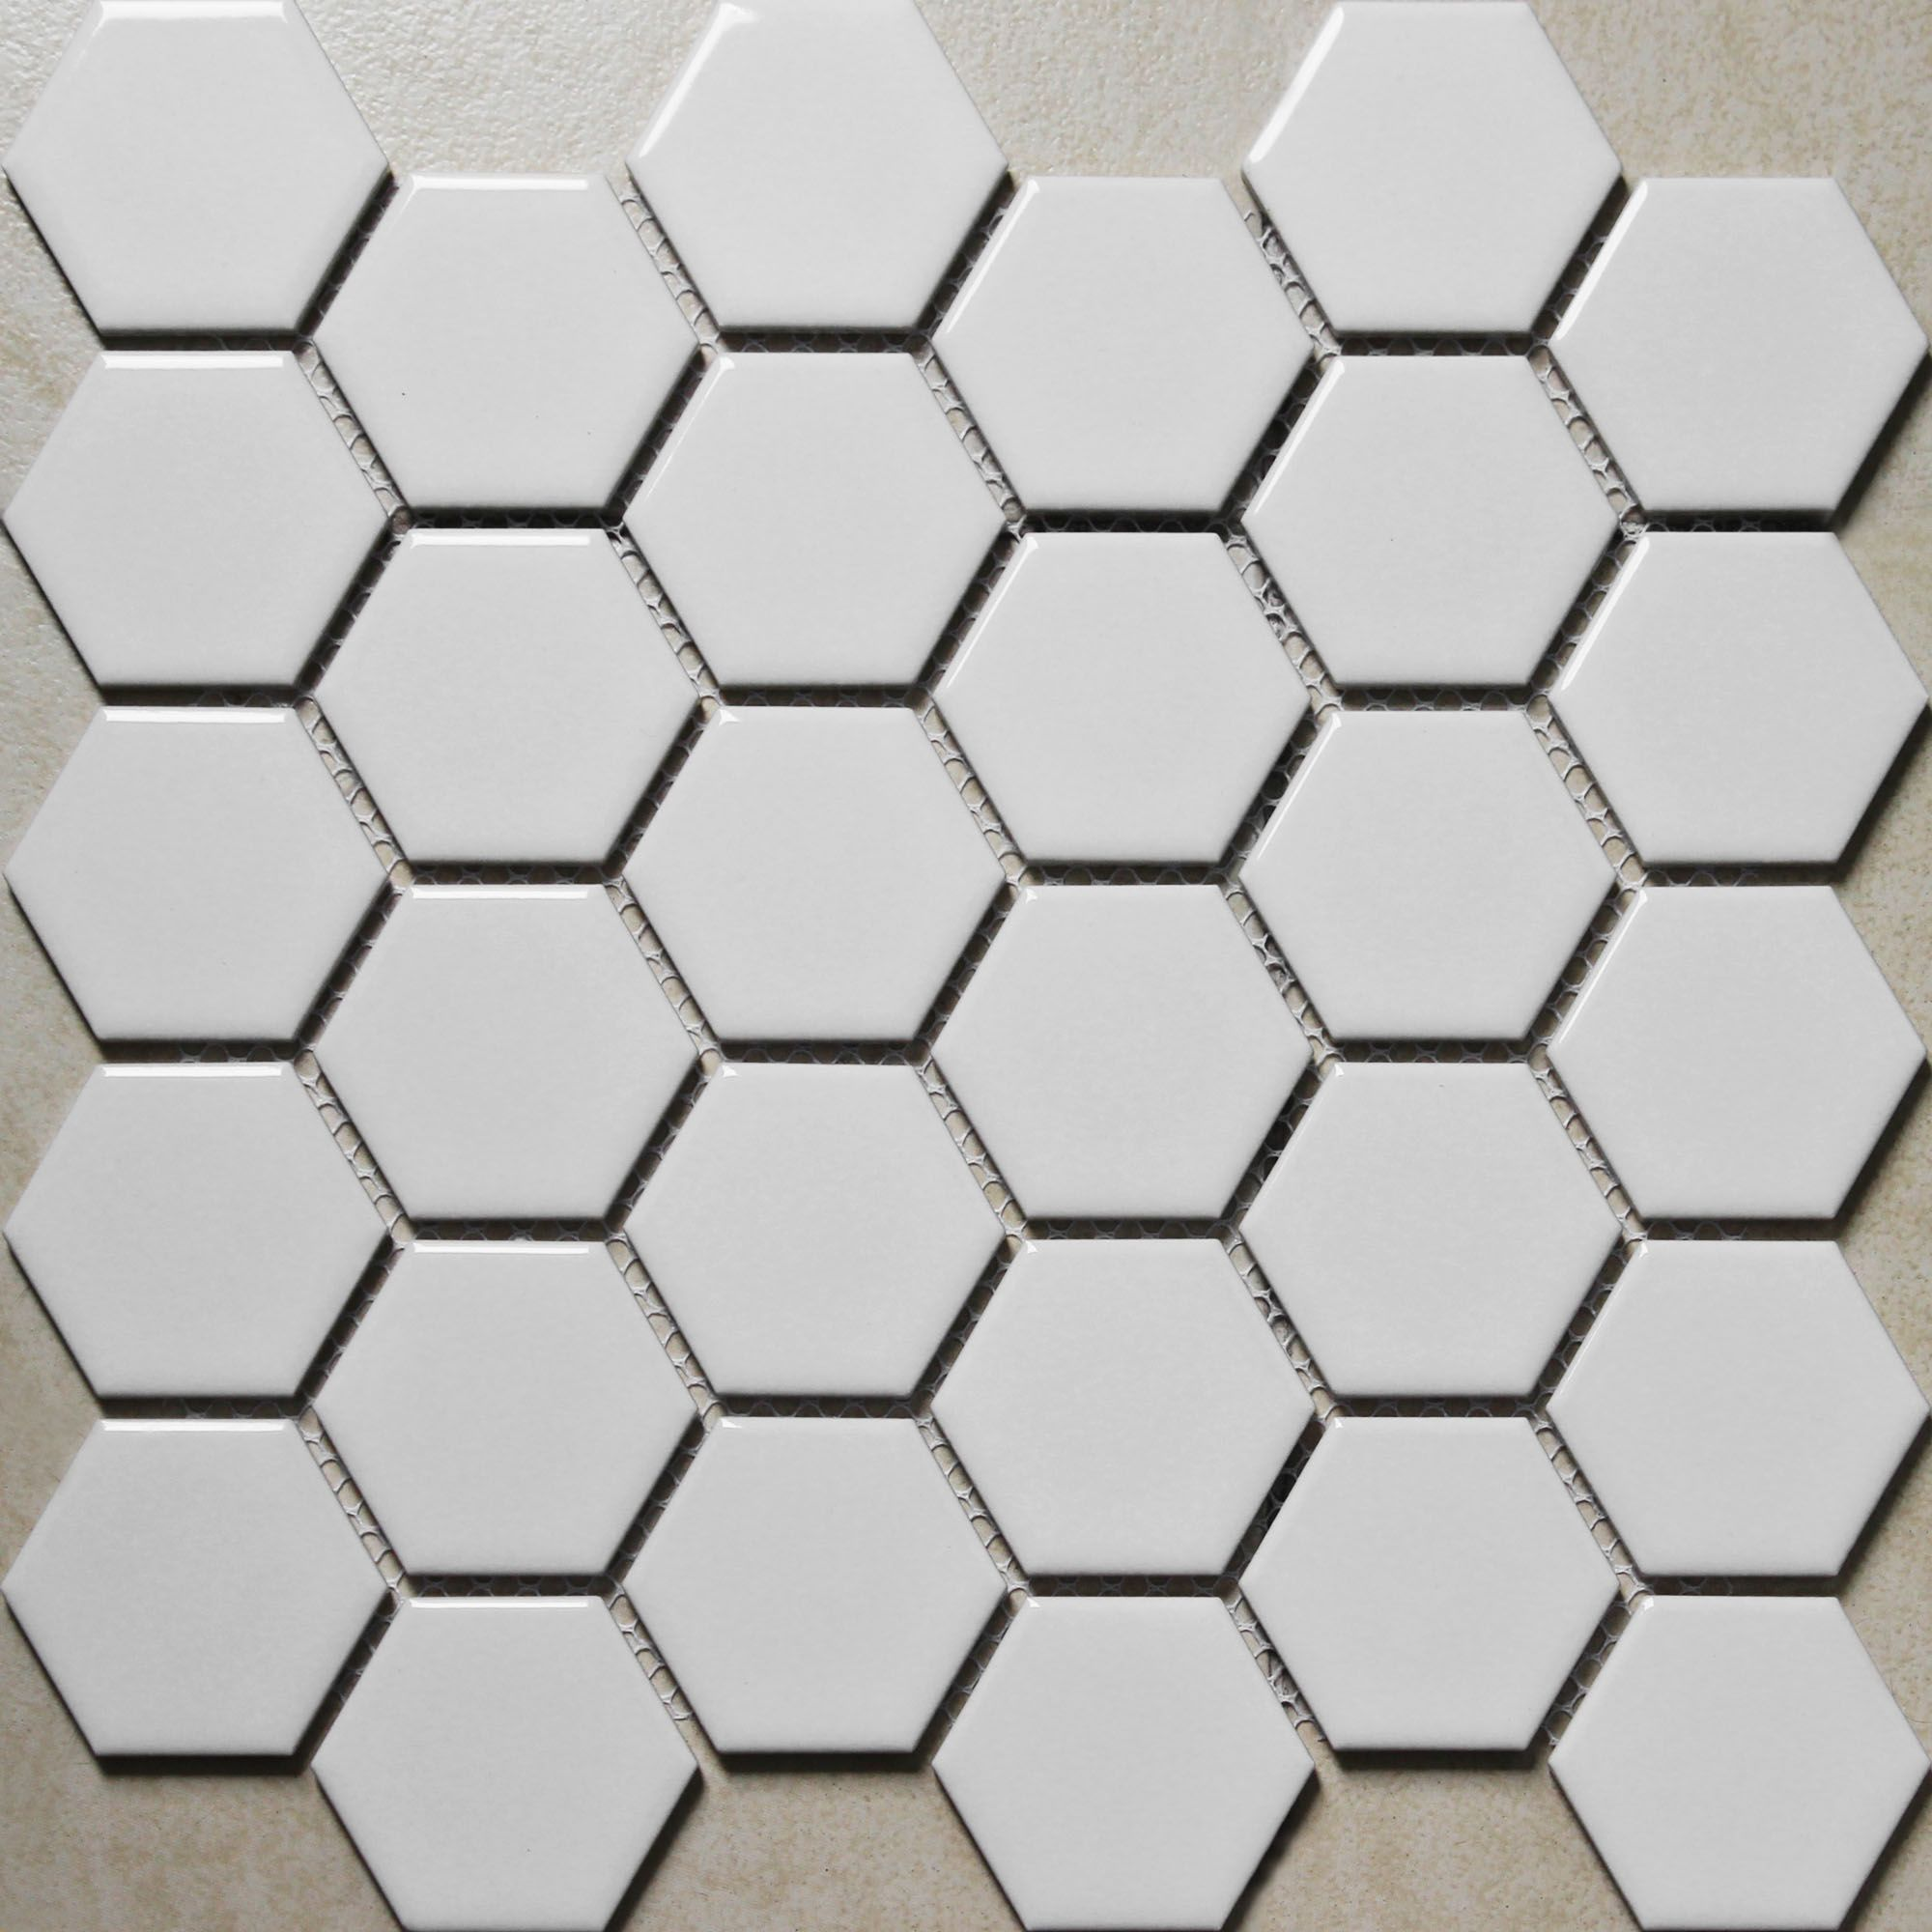 Hexagon Porcelain Tile White Shiny Porcelain Non Slip Tile